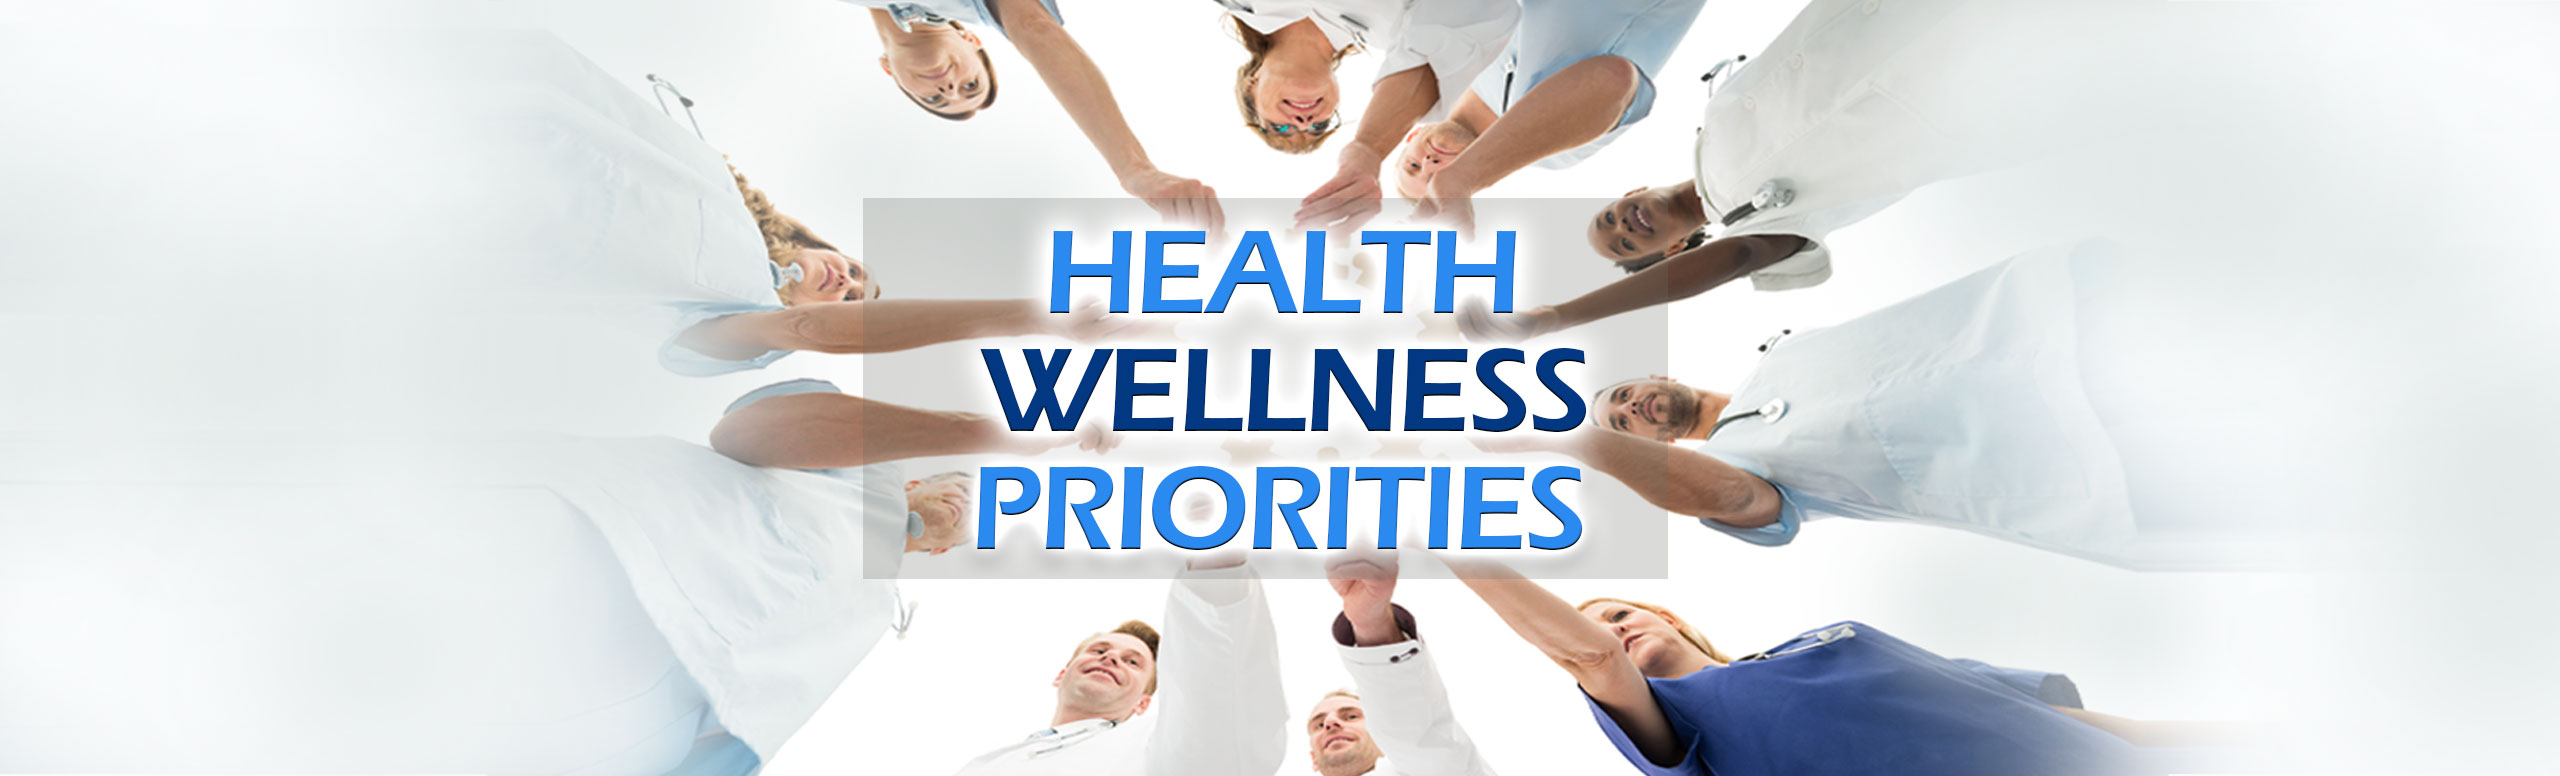 Banner picture of male and female Physicians and Nurses standing in a circle while holding their arms out while holding a sign  Banne sign says: HEALTH WELLNESS PRIORITIES